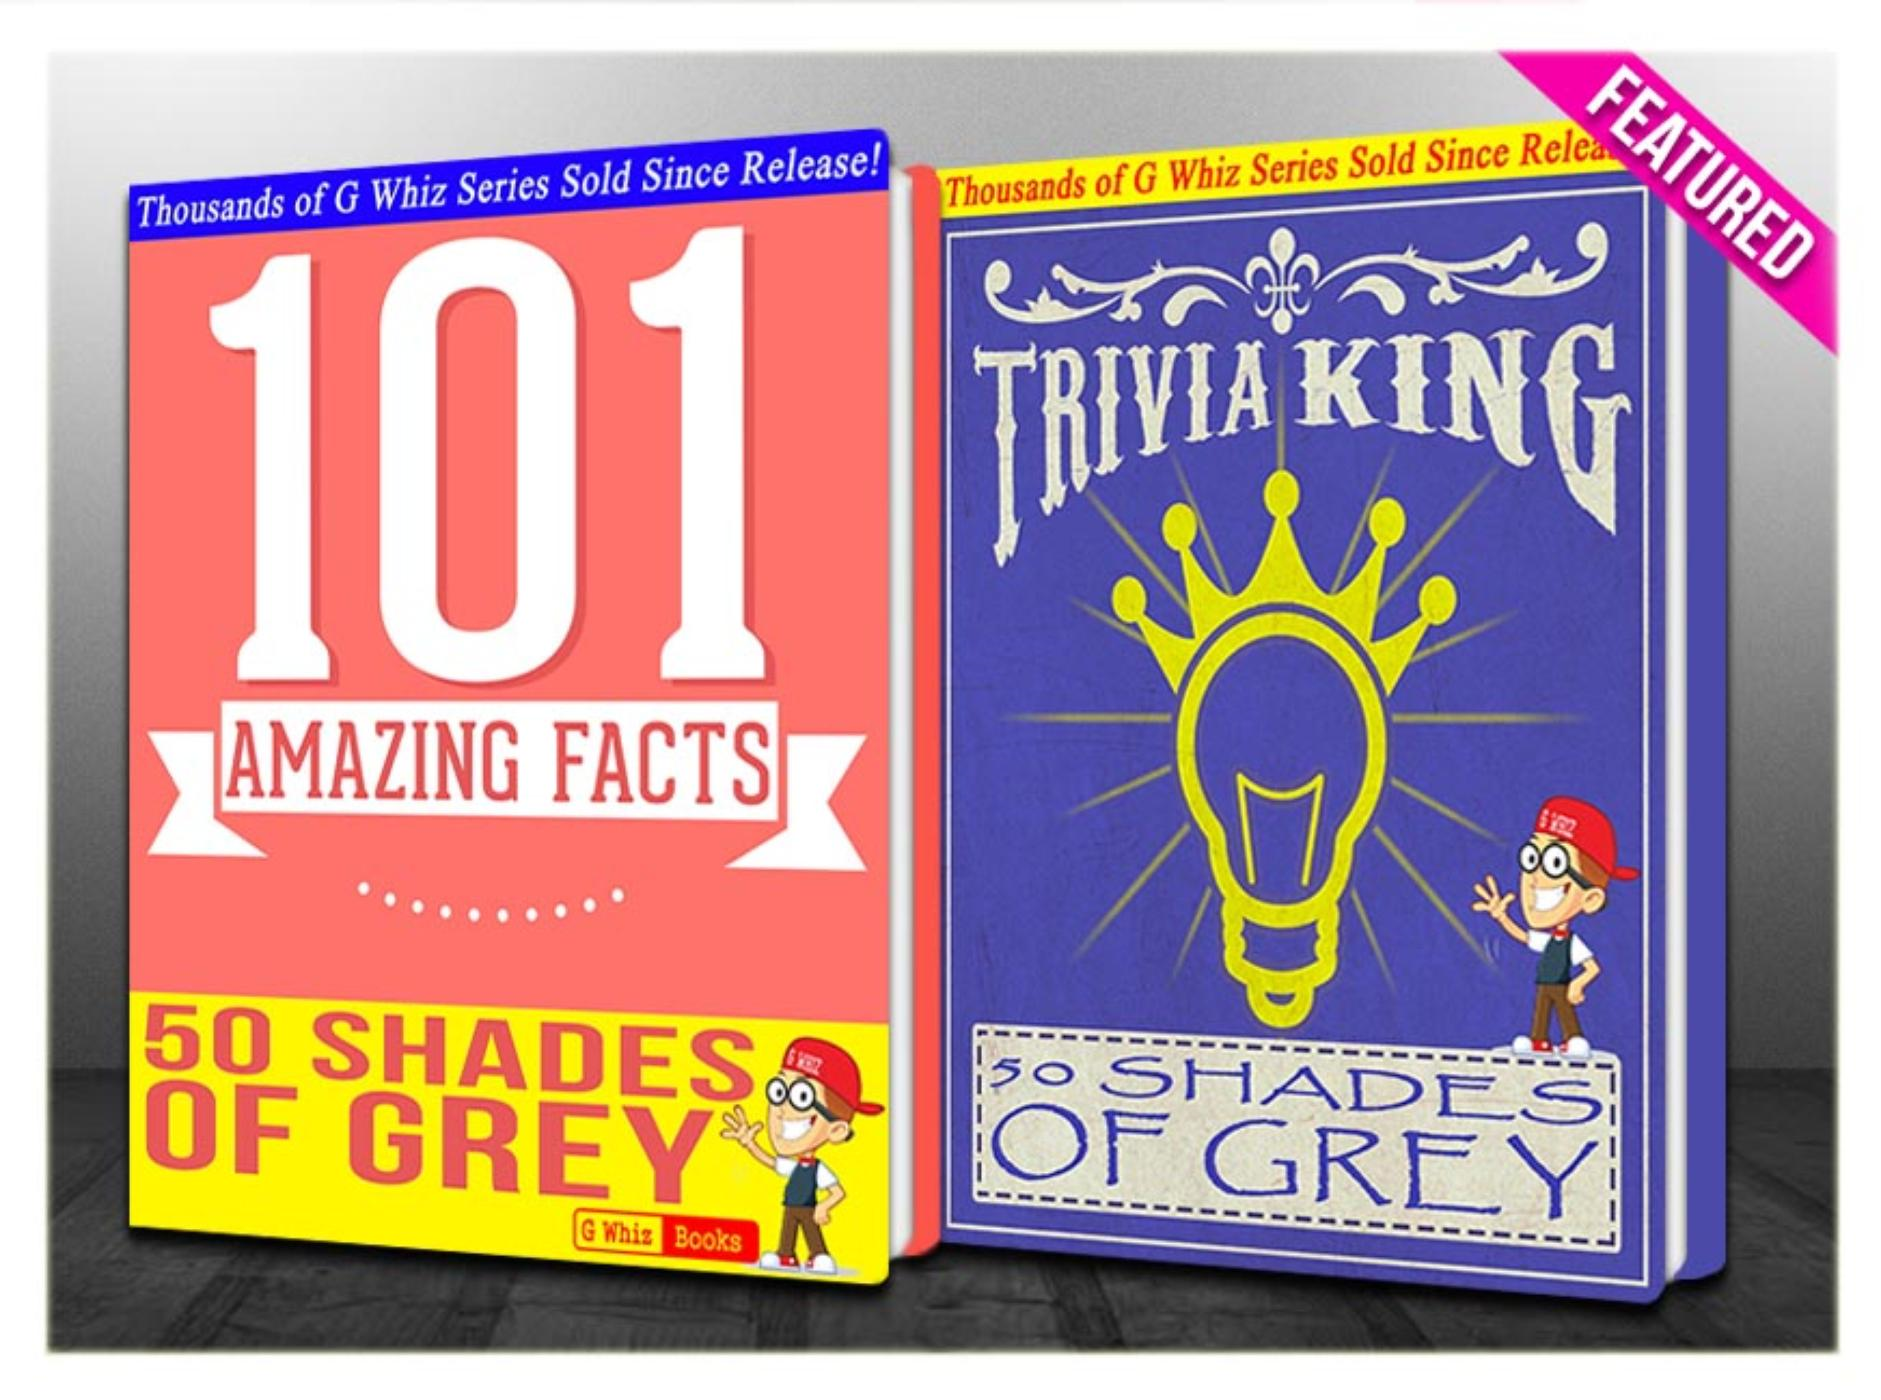 G Whiz - Fifty Shades of Grey - 101 Amazing Facts & Trivia King!